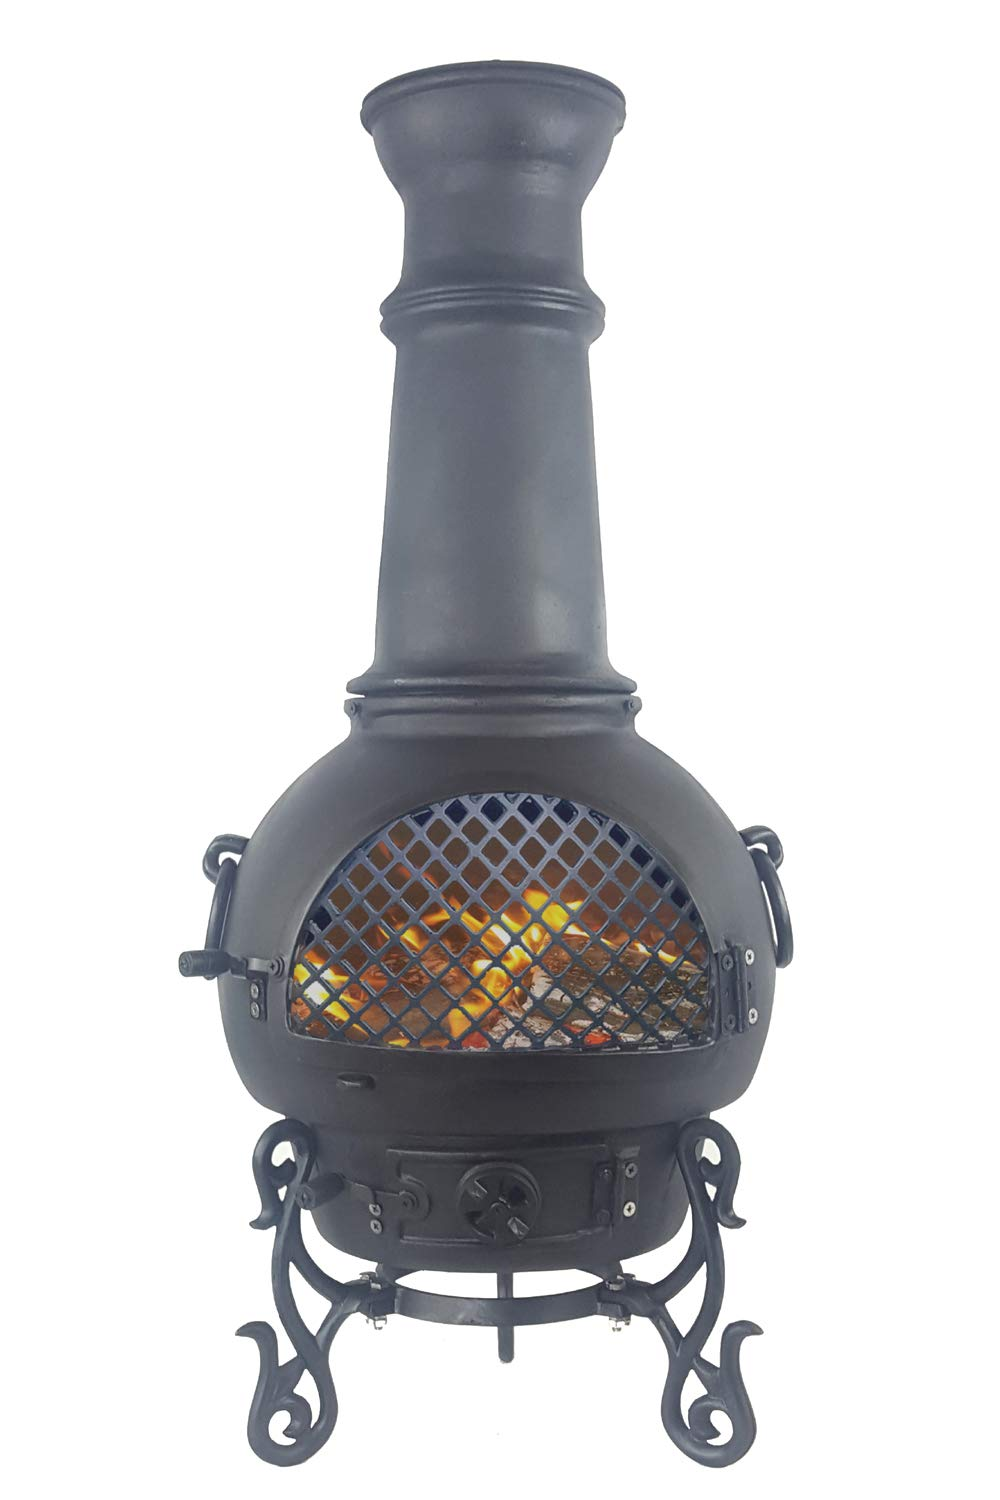 The Blue Rooster Gatsby Wood Burning Chiminea